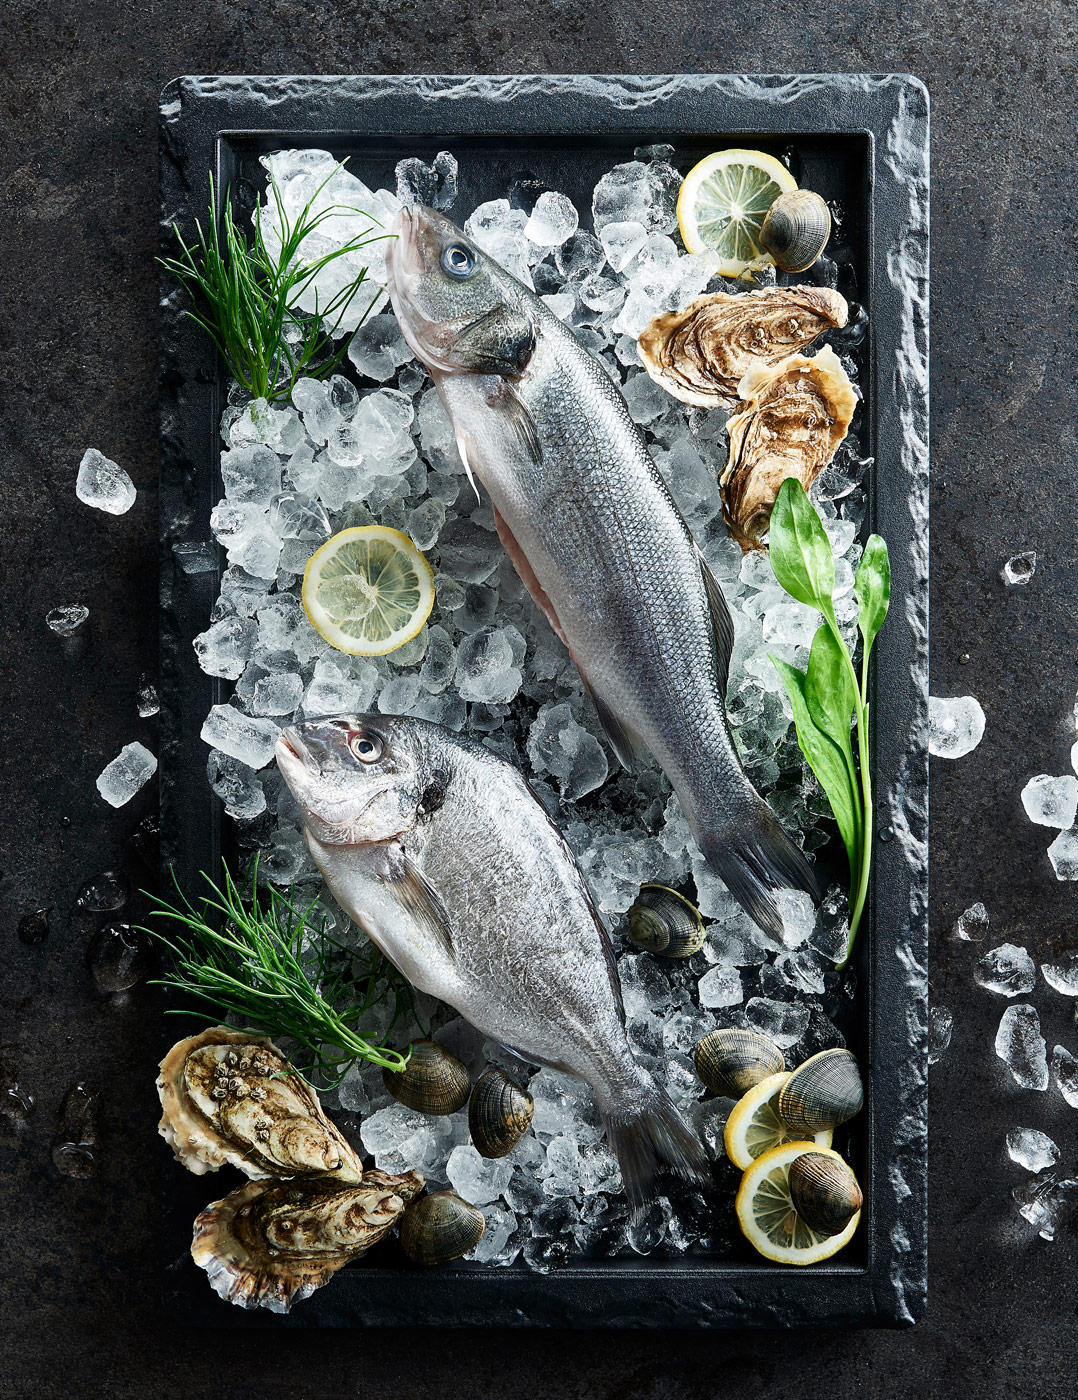 Fresh fish platter with ice